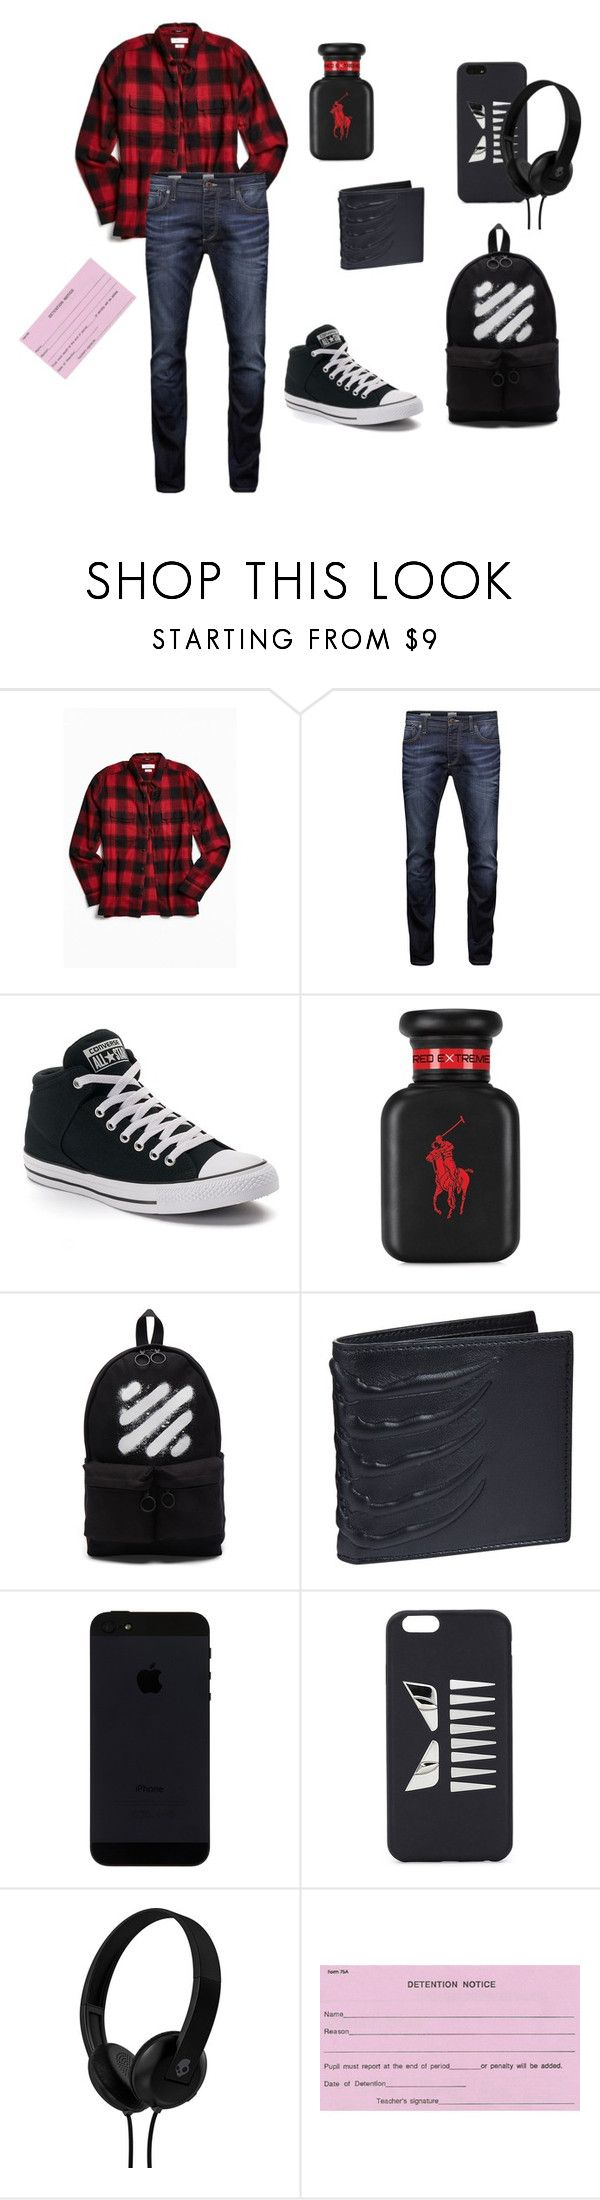 """Cartoon High #1~ Bad Little Boy"" by gravityfallsgirl33 ❤ liked on Polyvore featuring Urban Outfitters, Jack & Jones, Converse, Ralph Lauren, Off-White, Alexander McQueen, Fendi, Skullcandy, men's fashion and menswear"